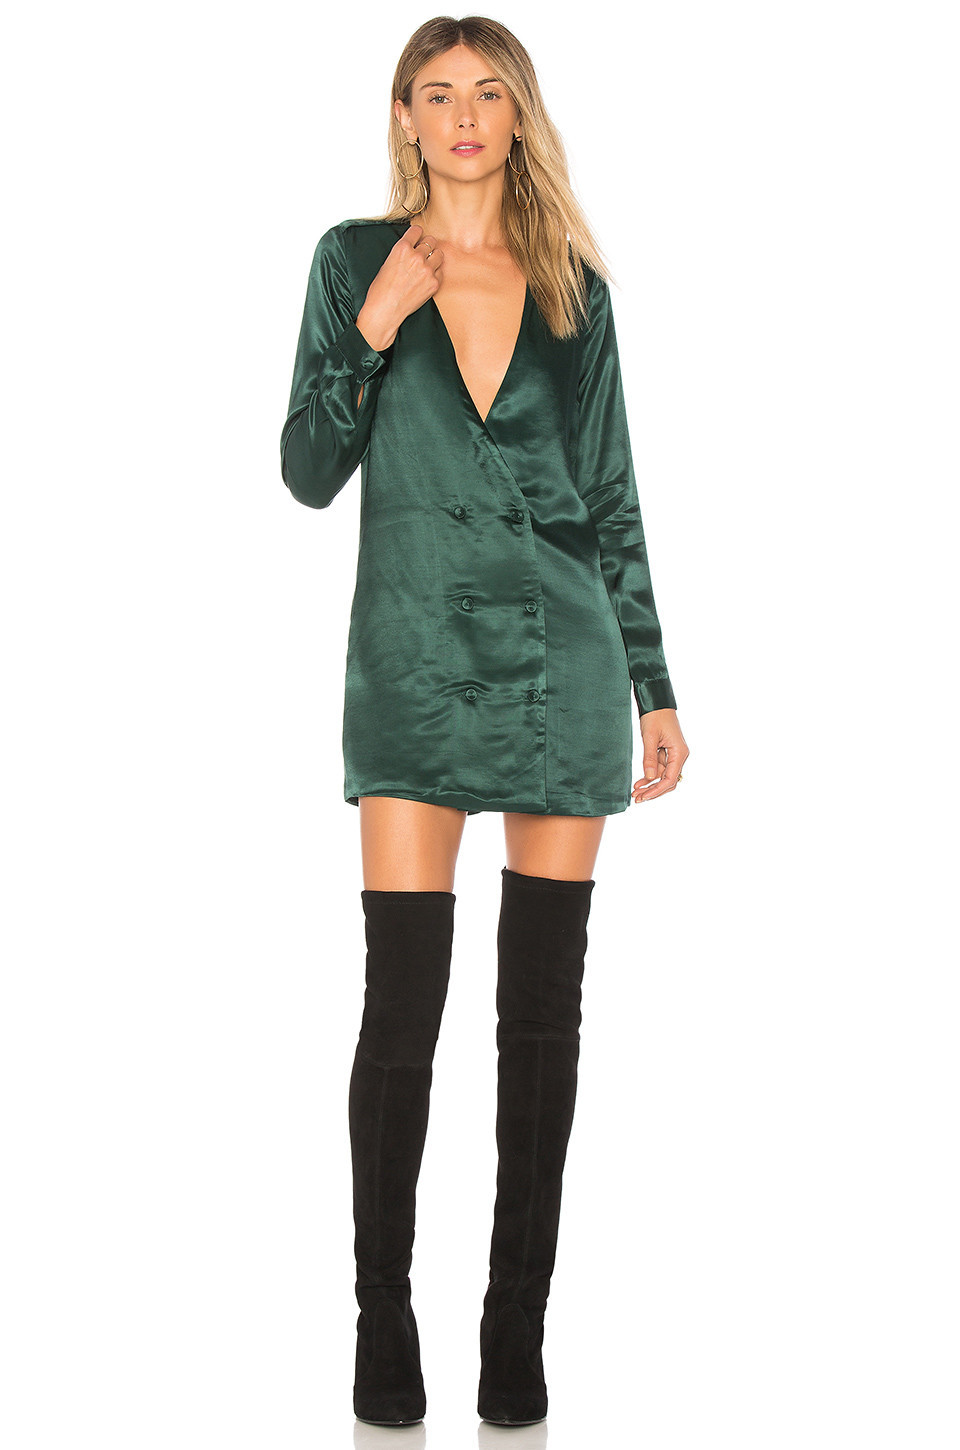 L'Academie The Cadet Dress in green